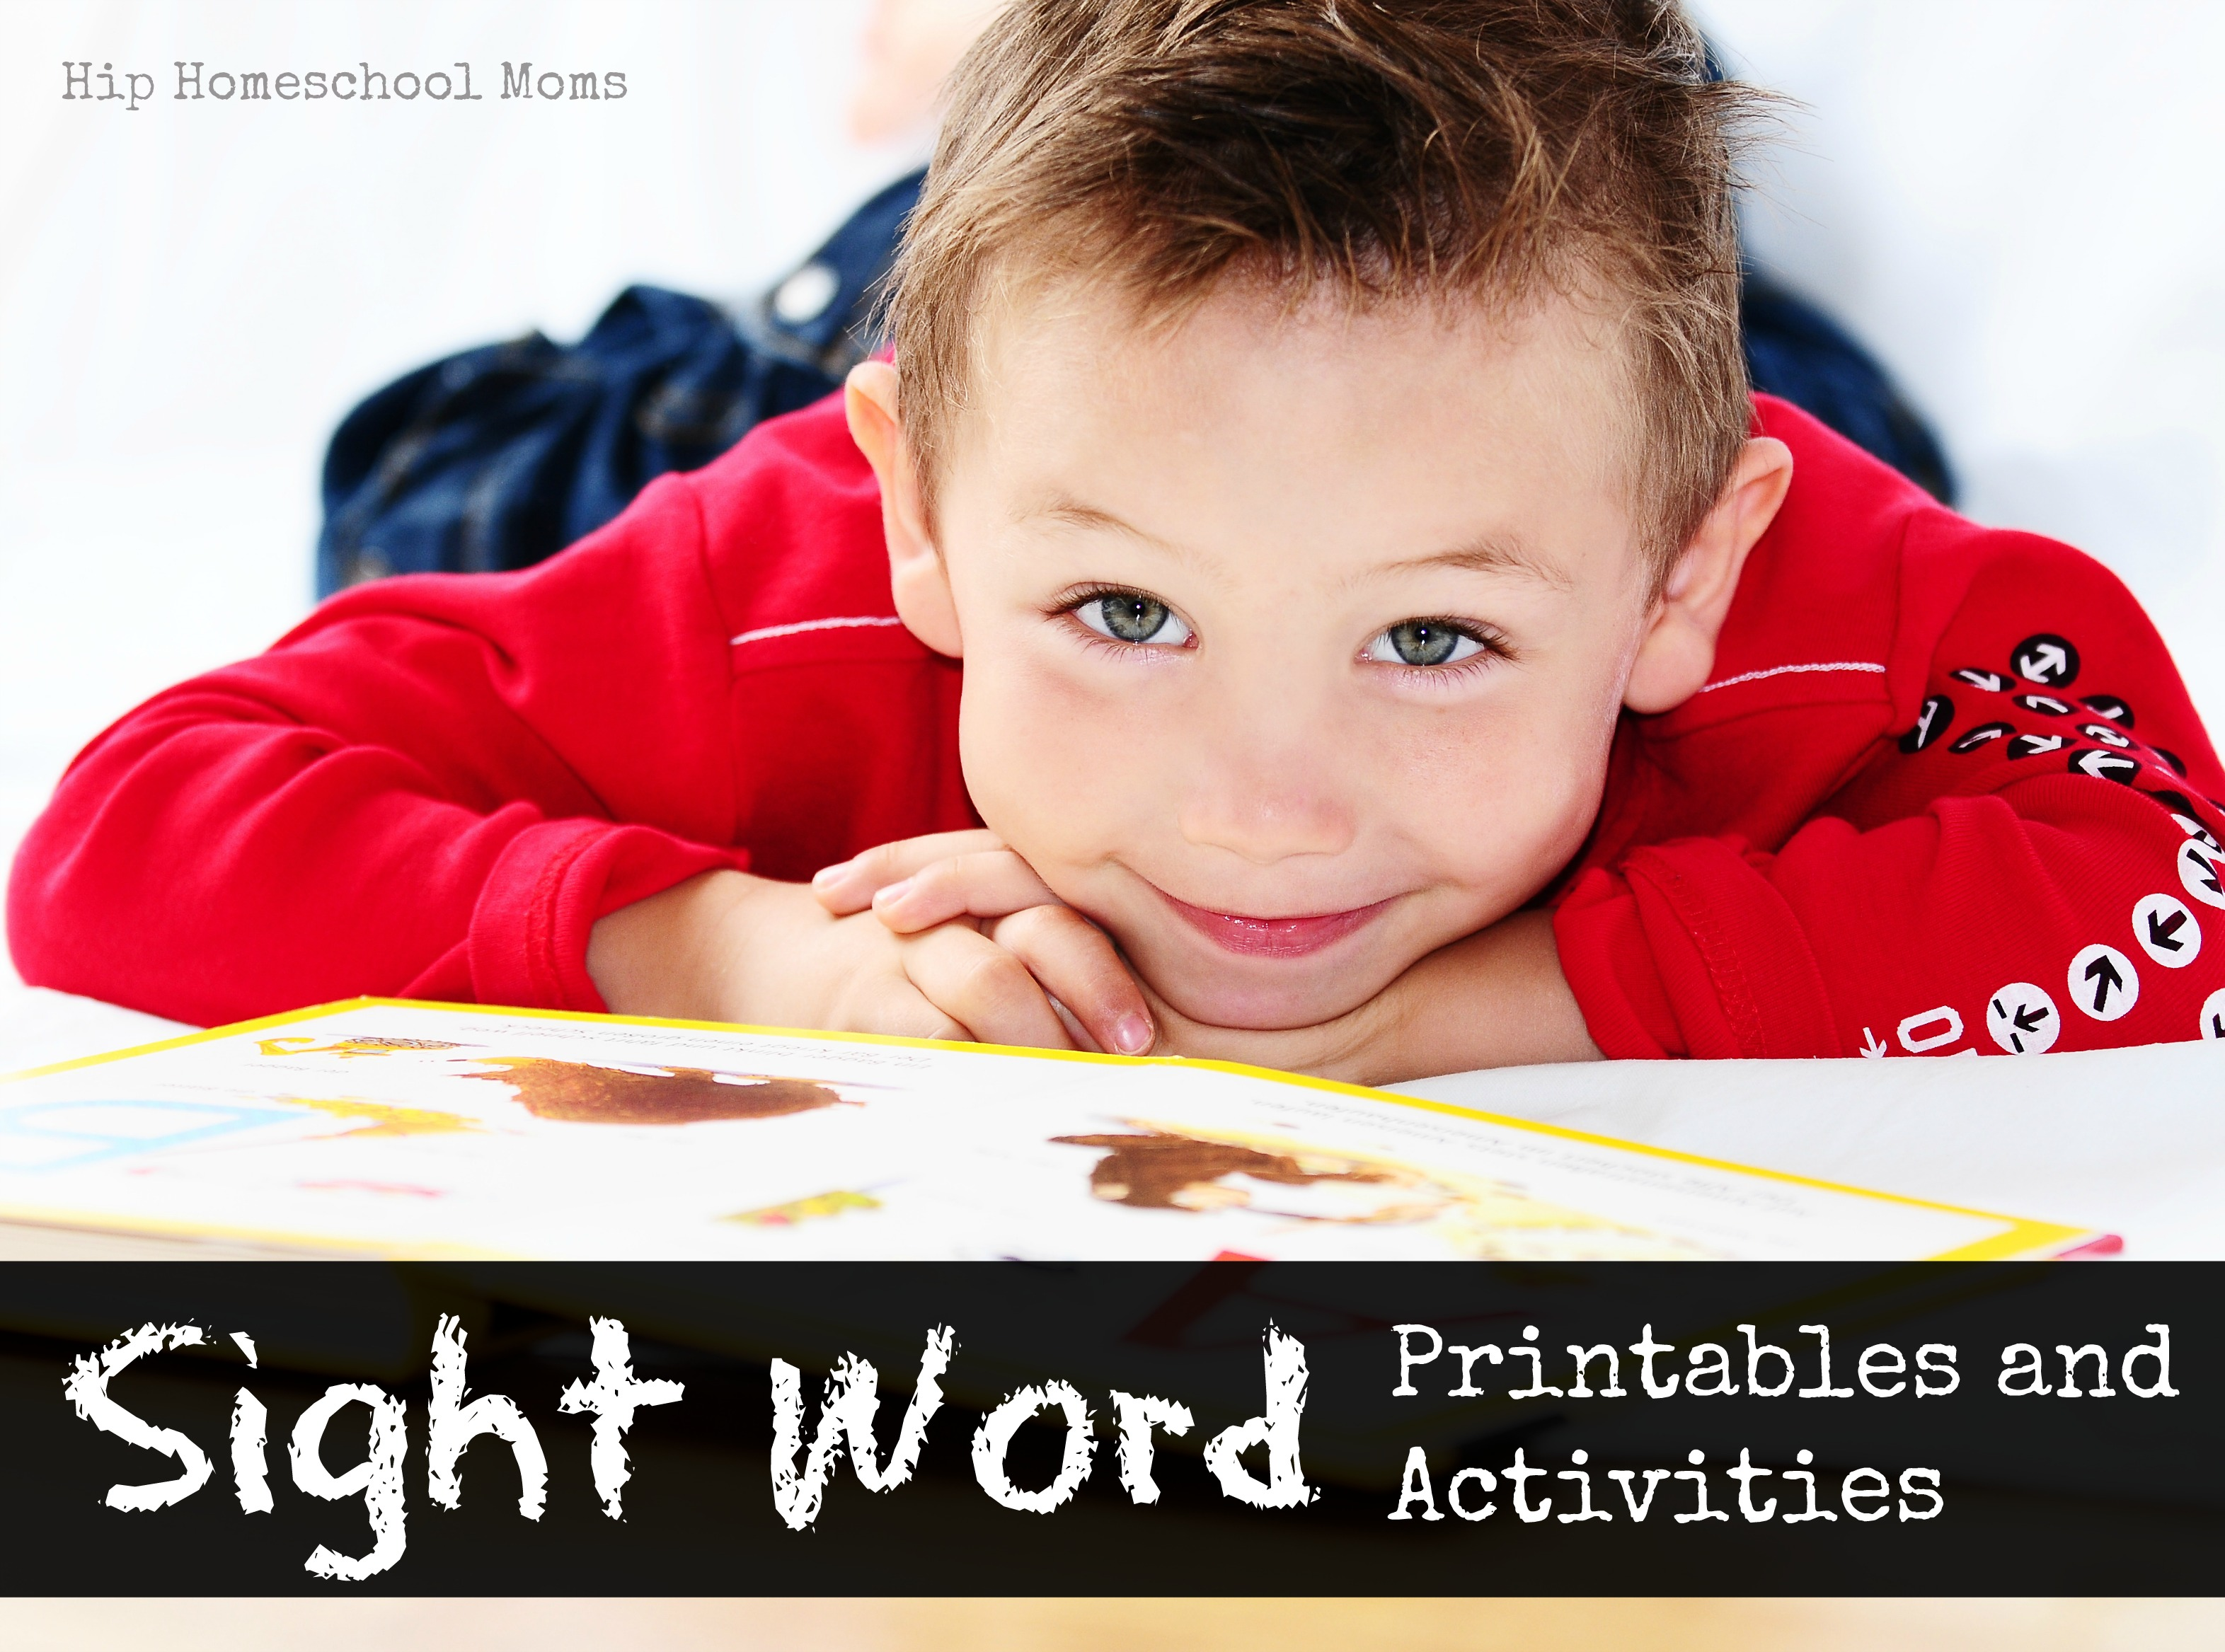 Sight Word Printables and Activities | Hip Homeschool Moms